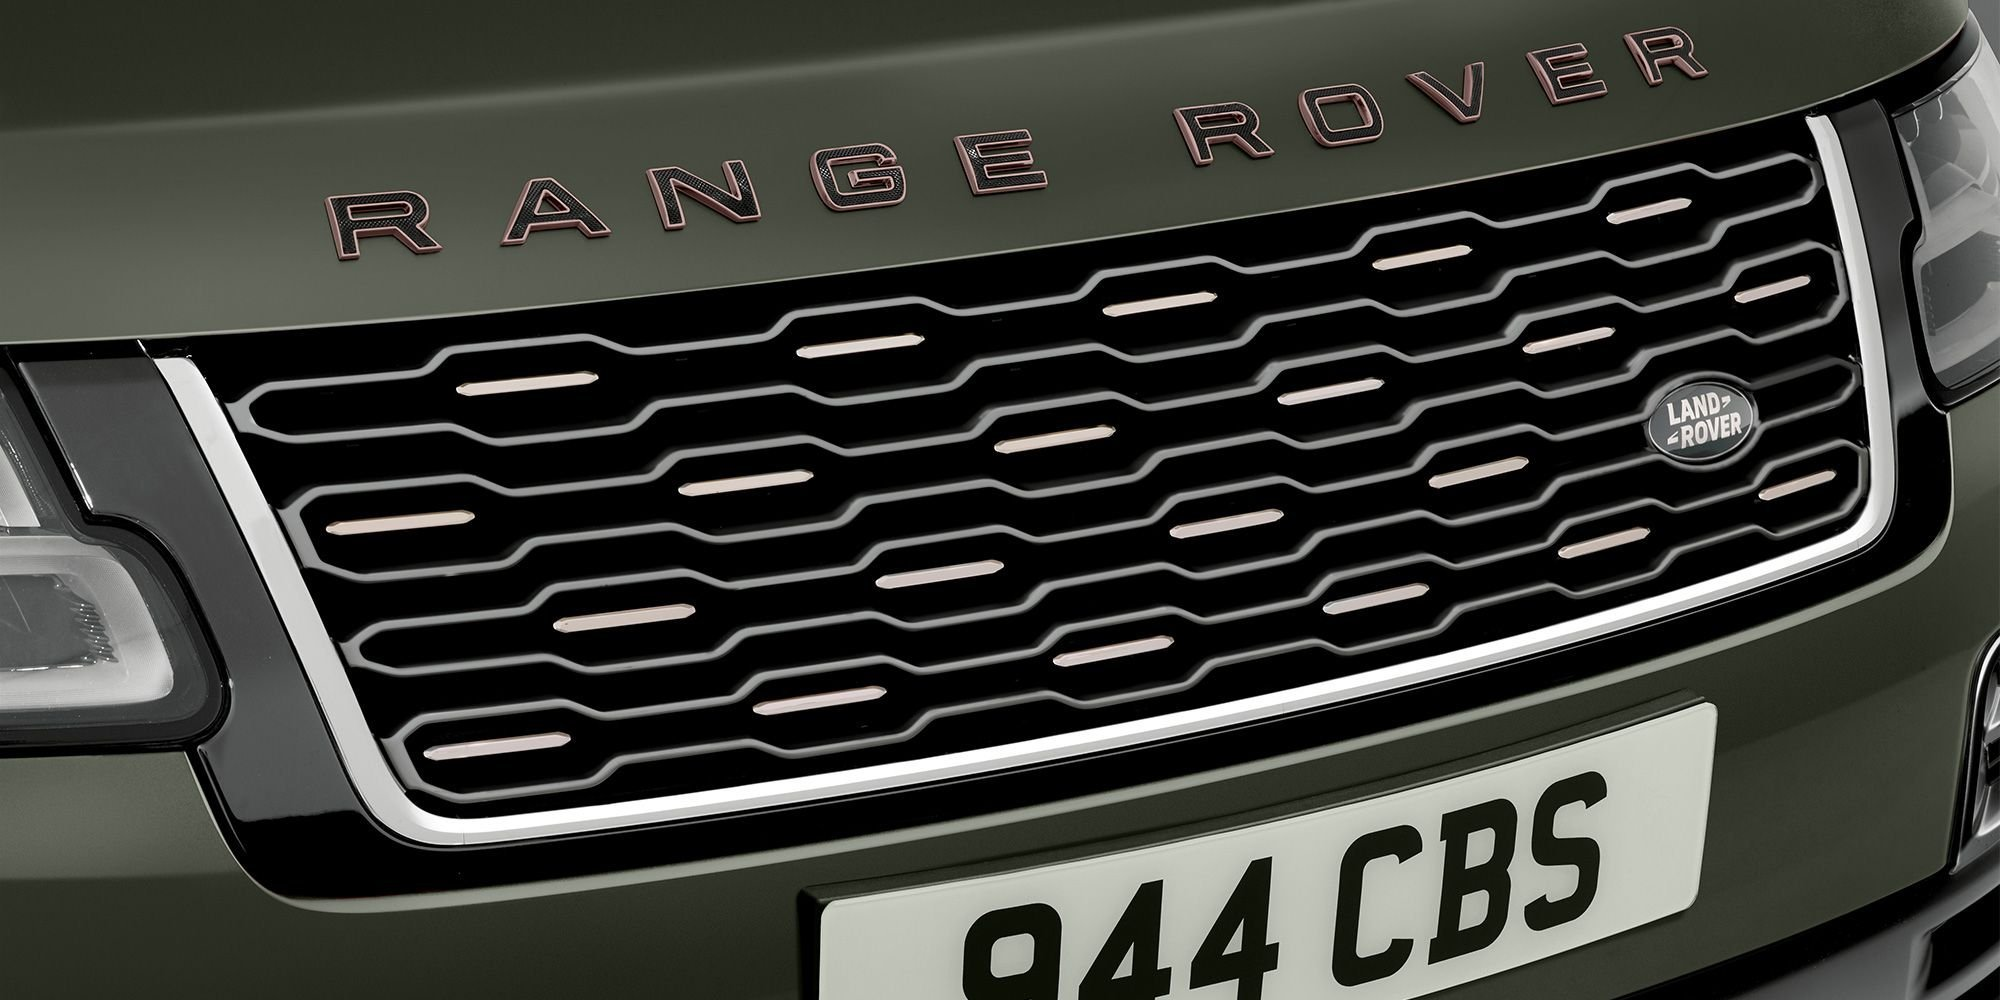 The New 2022 Range Rover Is Coming: Here's Everything You Need to Know